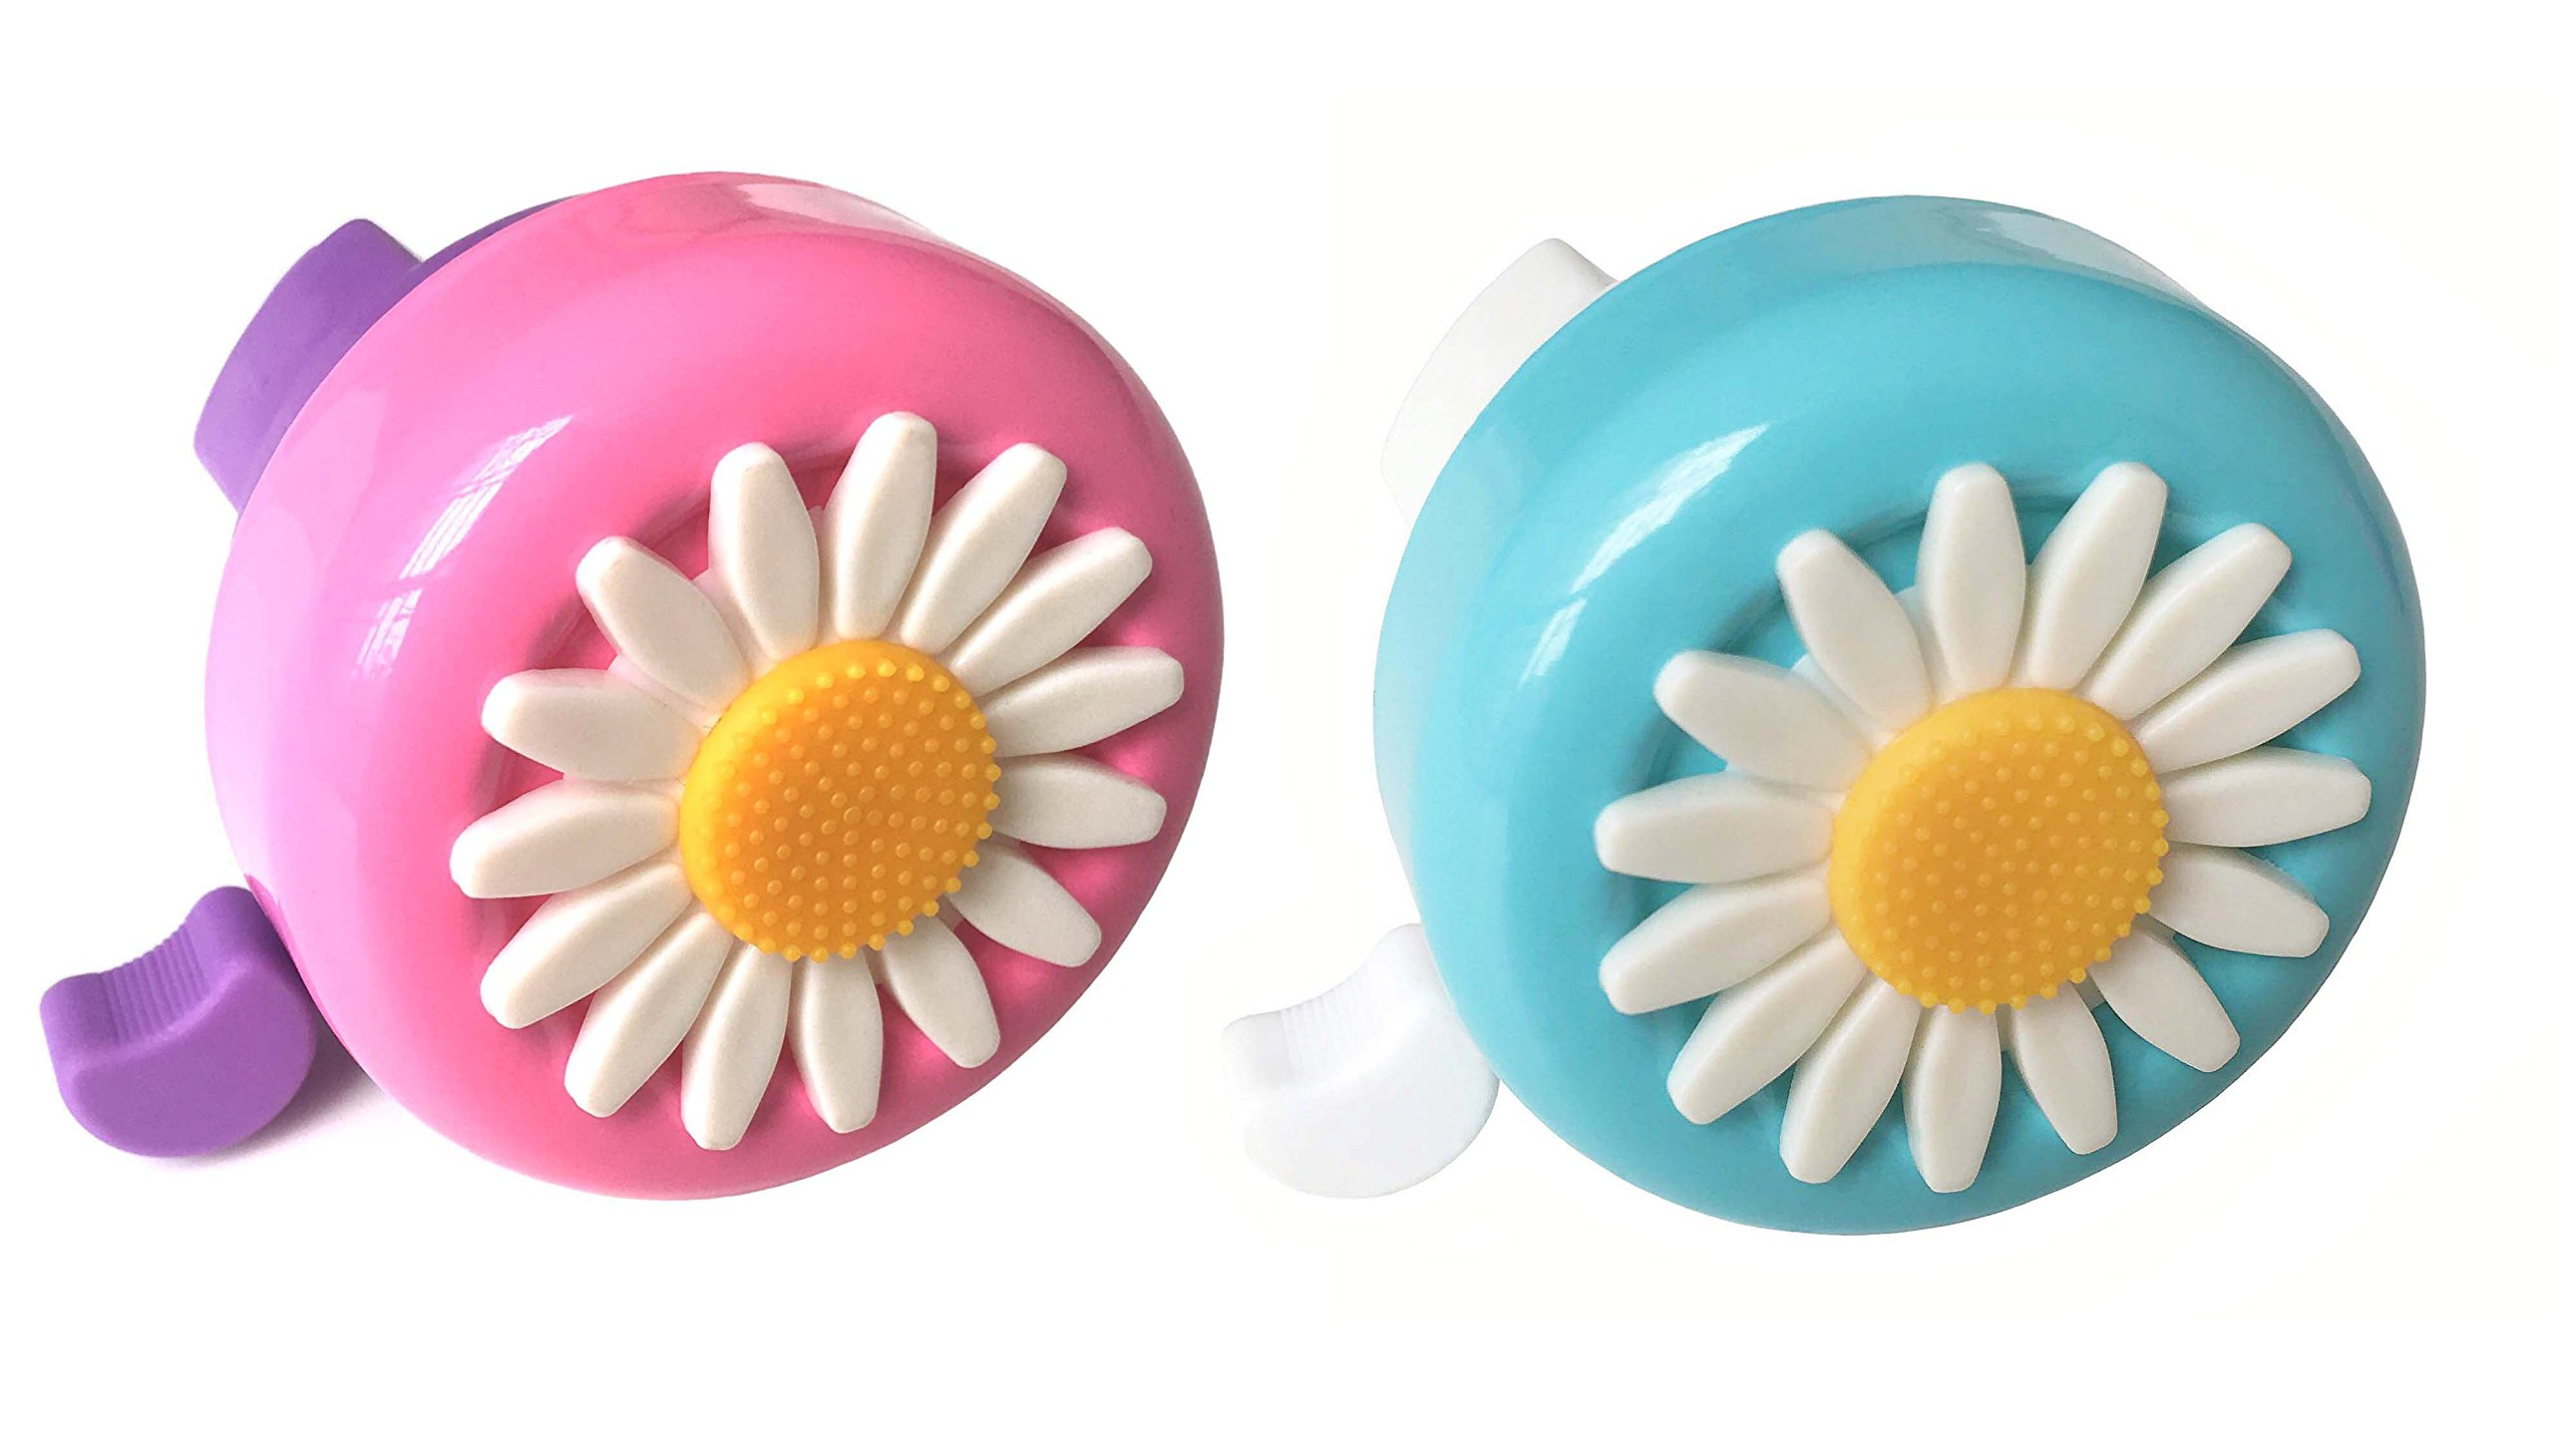 Aimyoo Set of 2 Blue & Pink Kids Toddlers Bicycle Bells - Daisy Bike Ring Horn , Clear and Loud Ringtone Alert